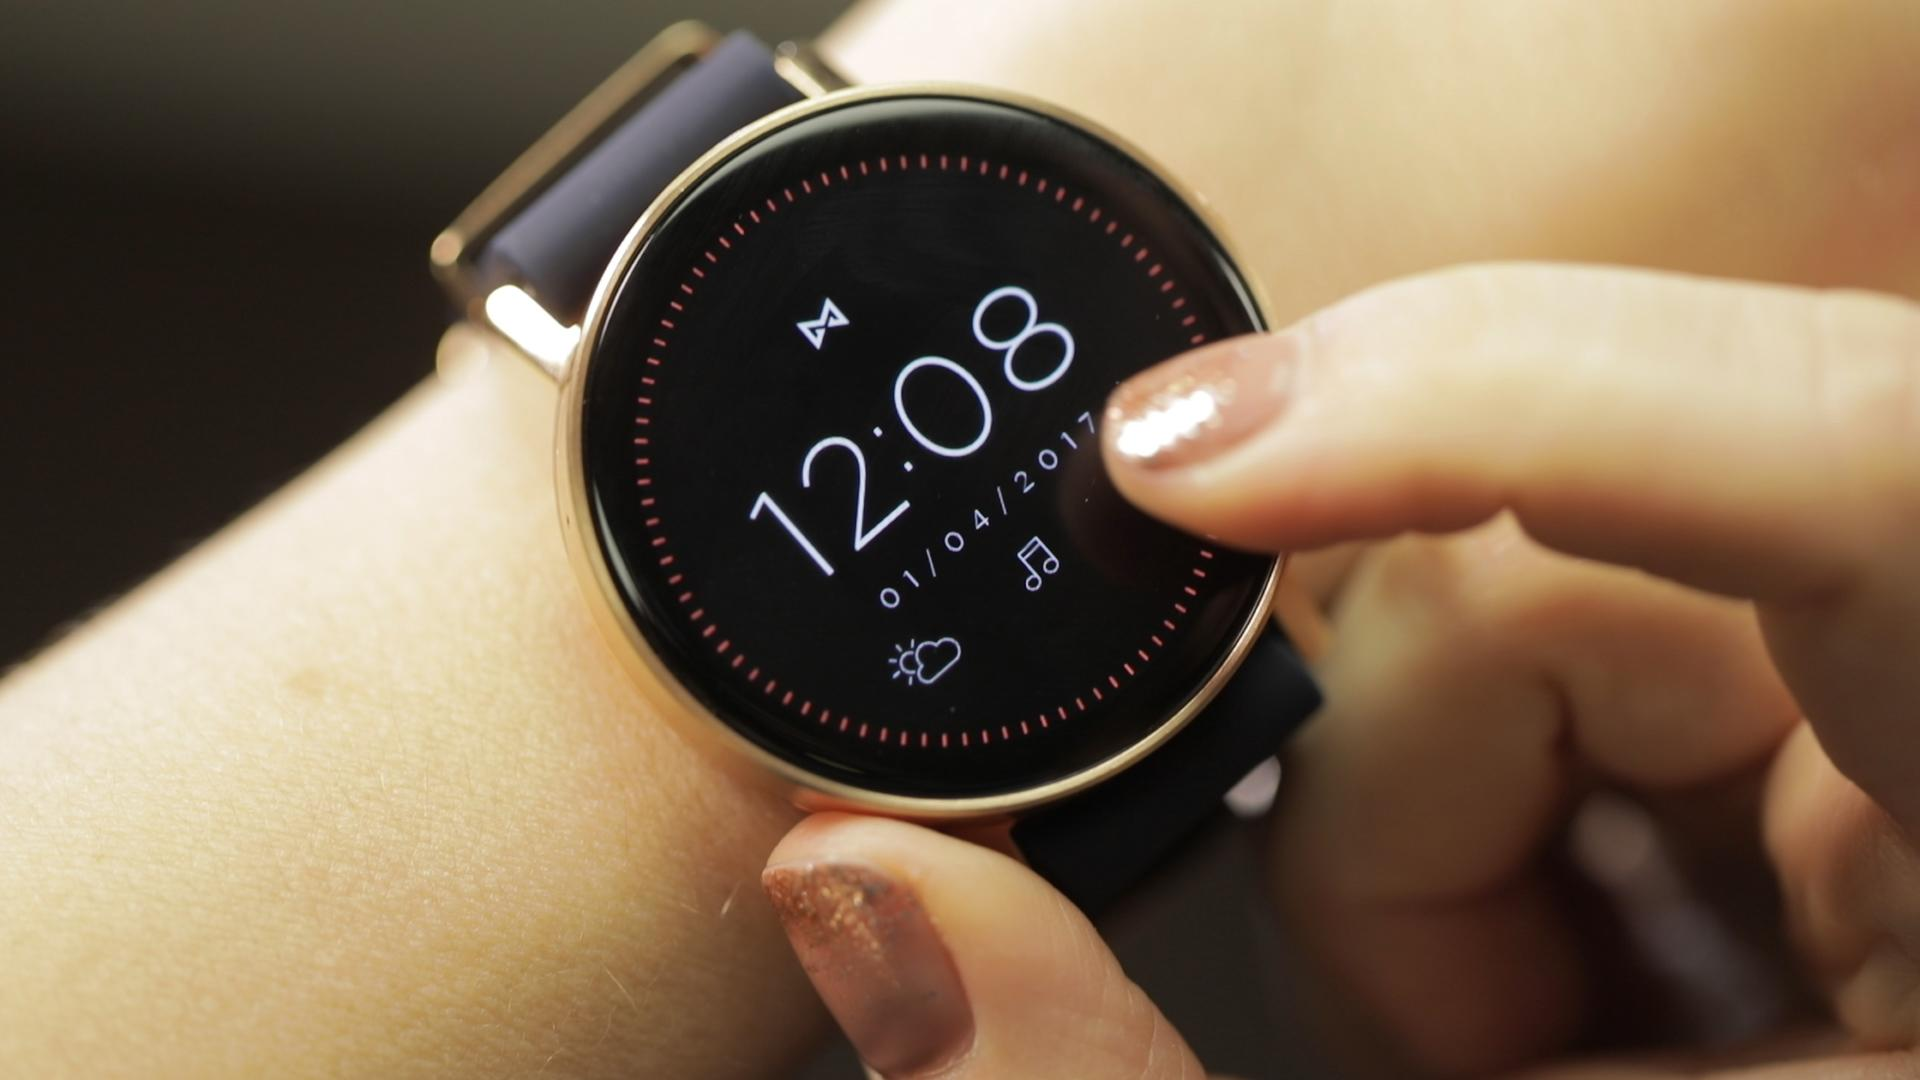 Misfit goes full-on smartwatch with the Vapor